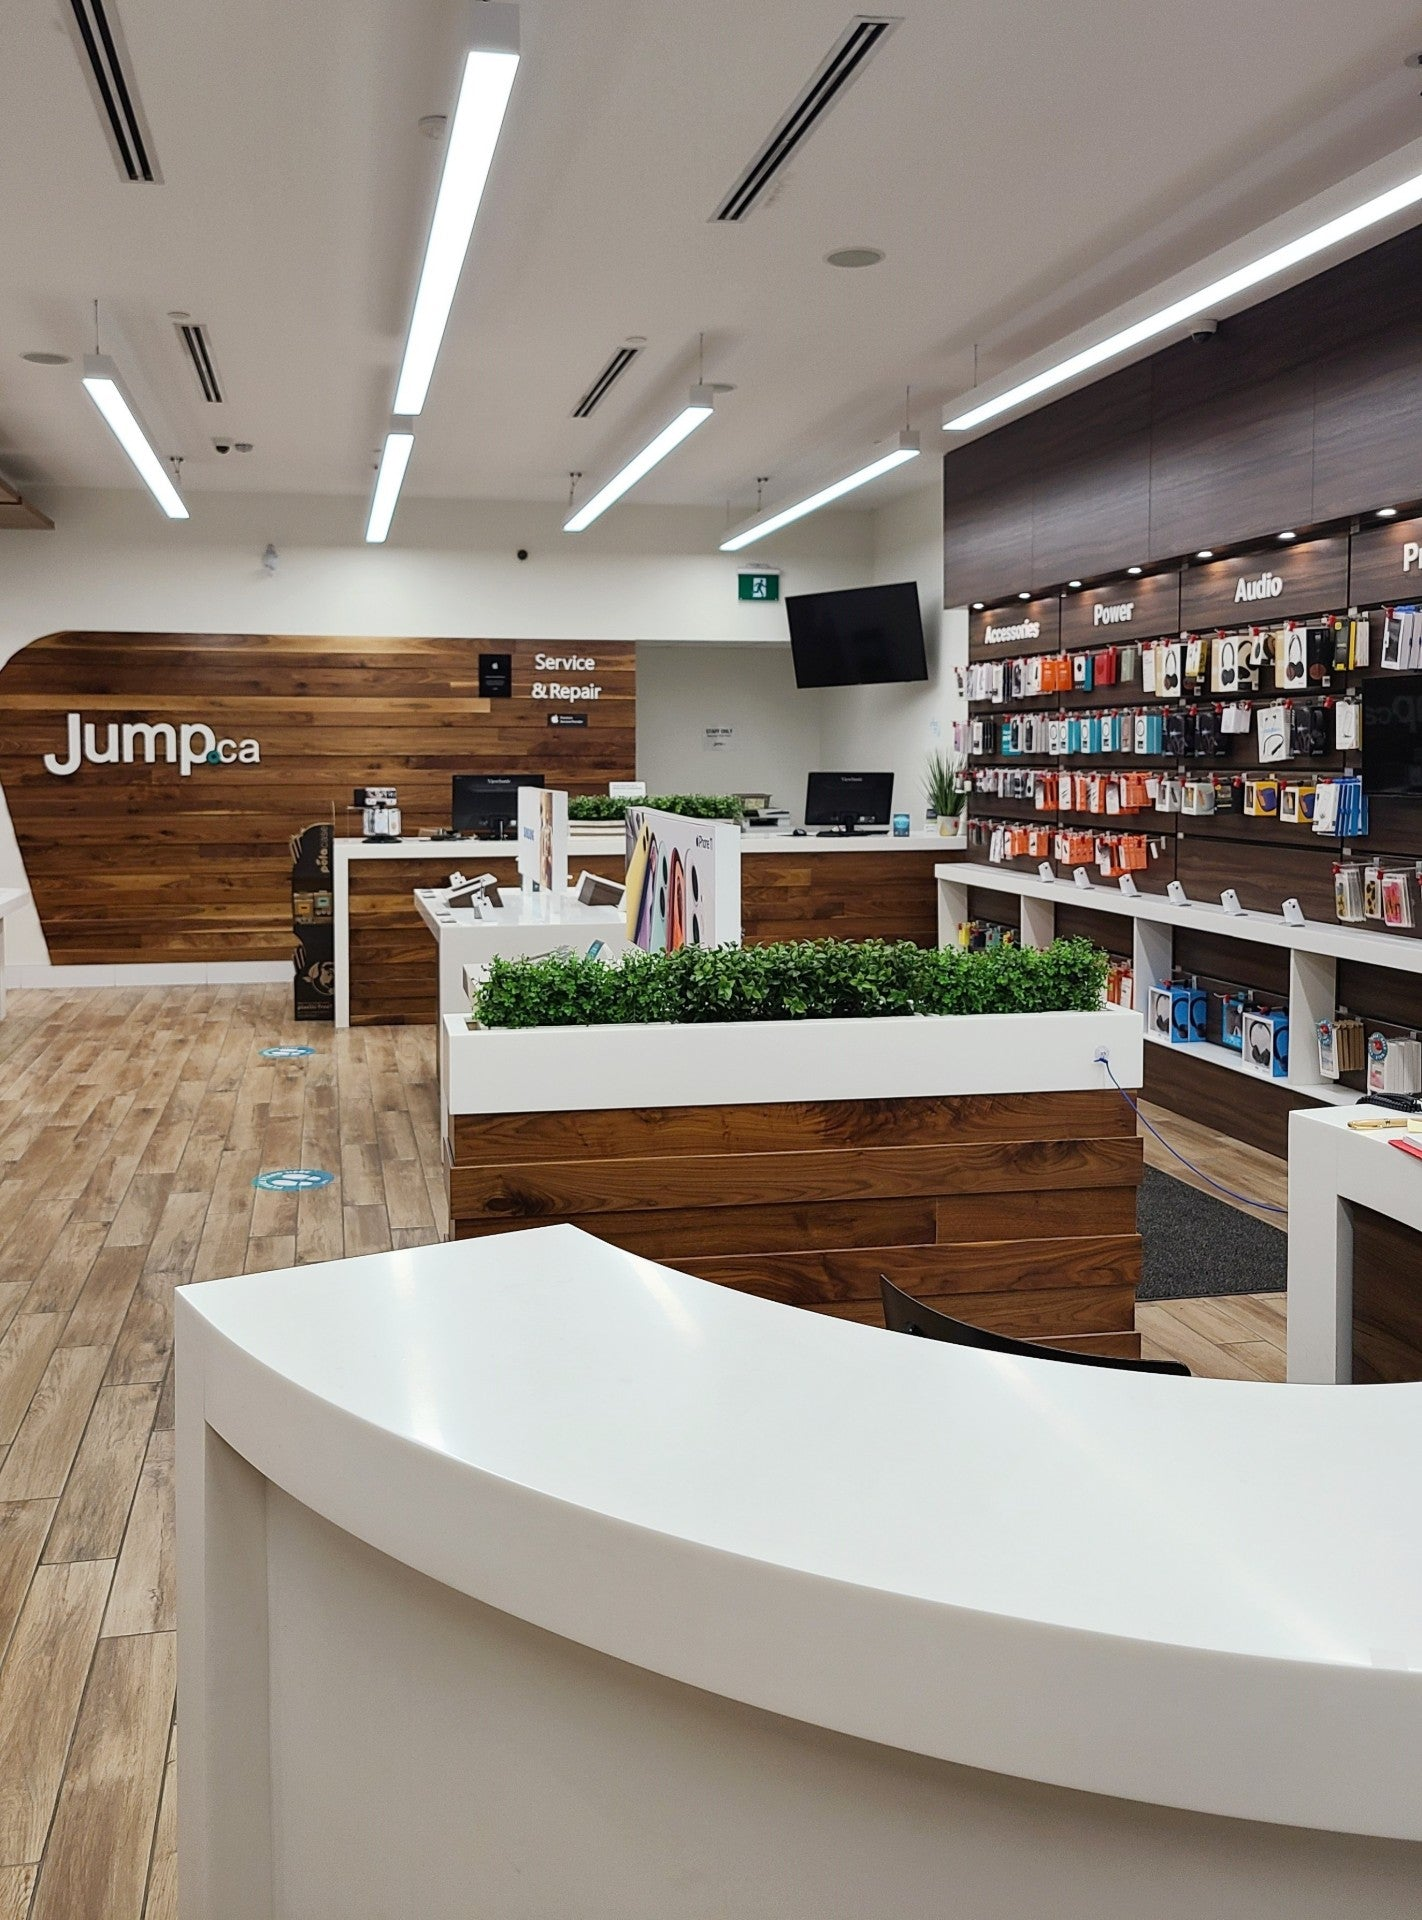 Photo of Cornwall Centre Jump.ca Store in Regina